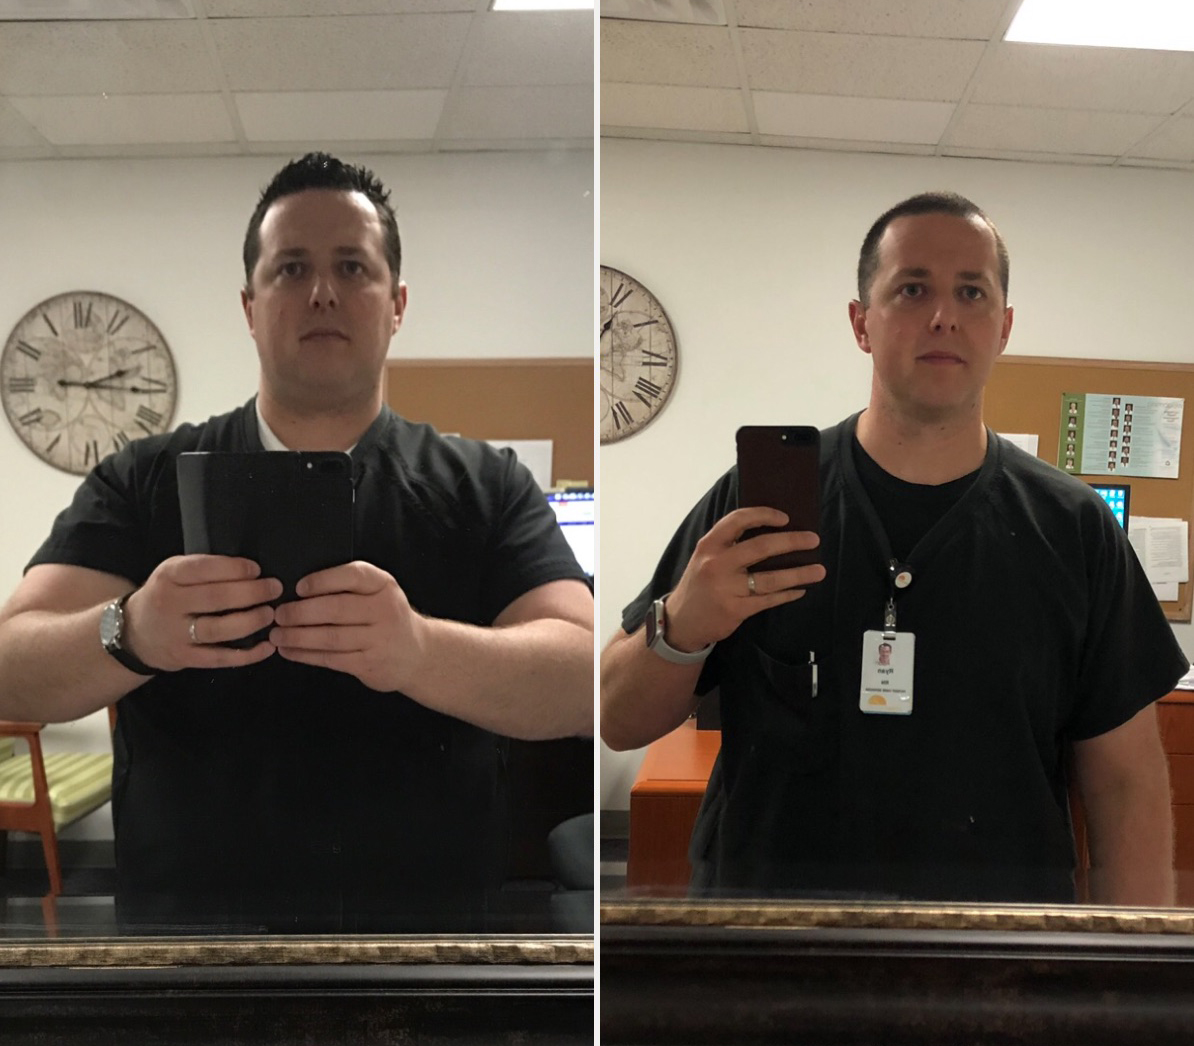 Ryan Graves weight loss and weight maintenance transformation, losing 70 pounds. Left 2017, Right 2019.